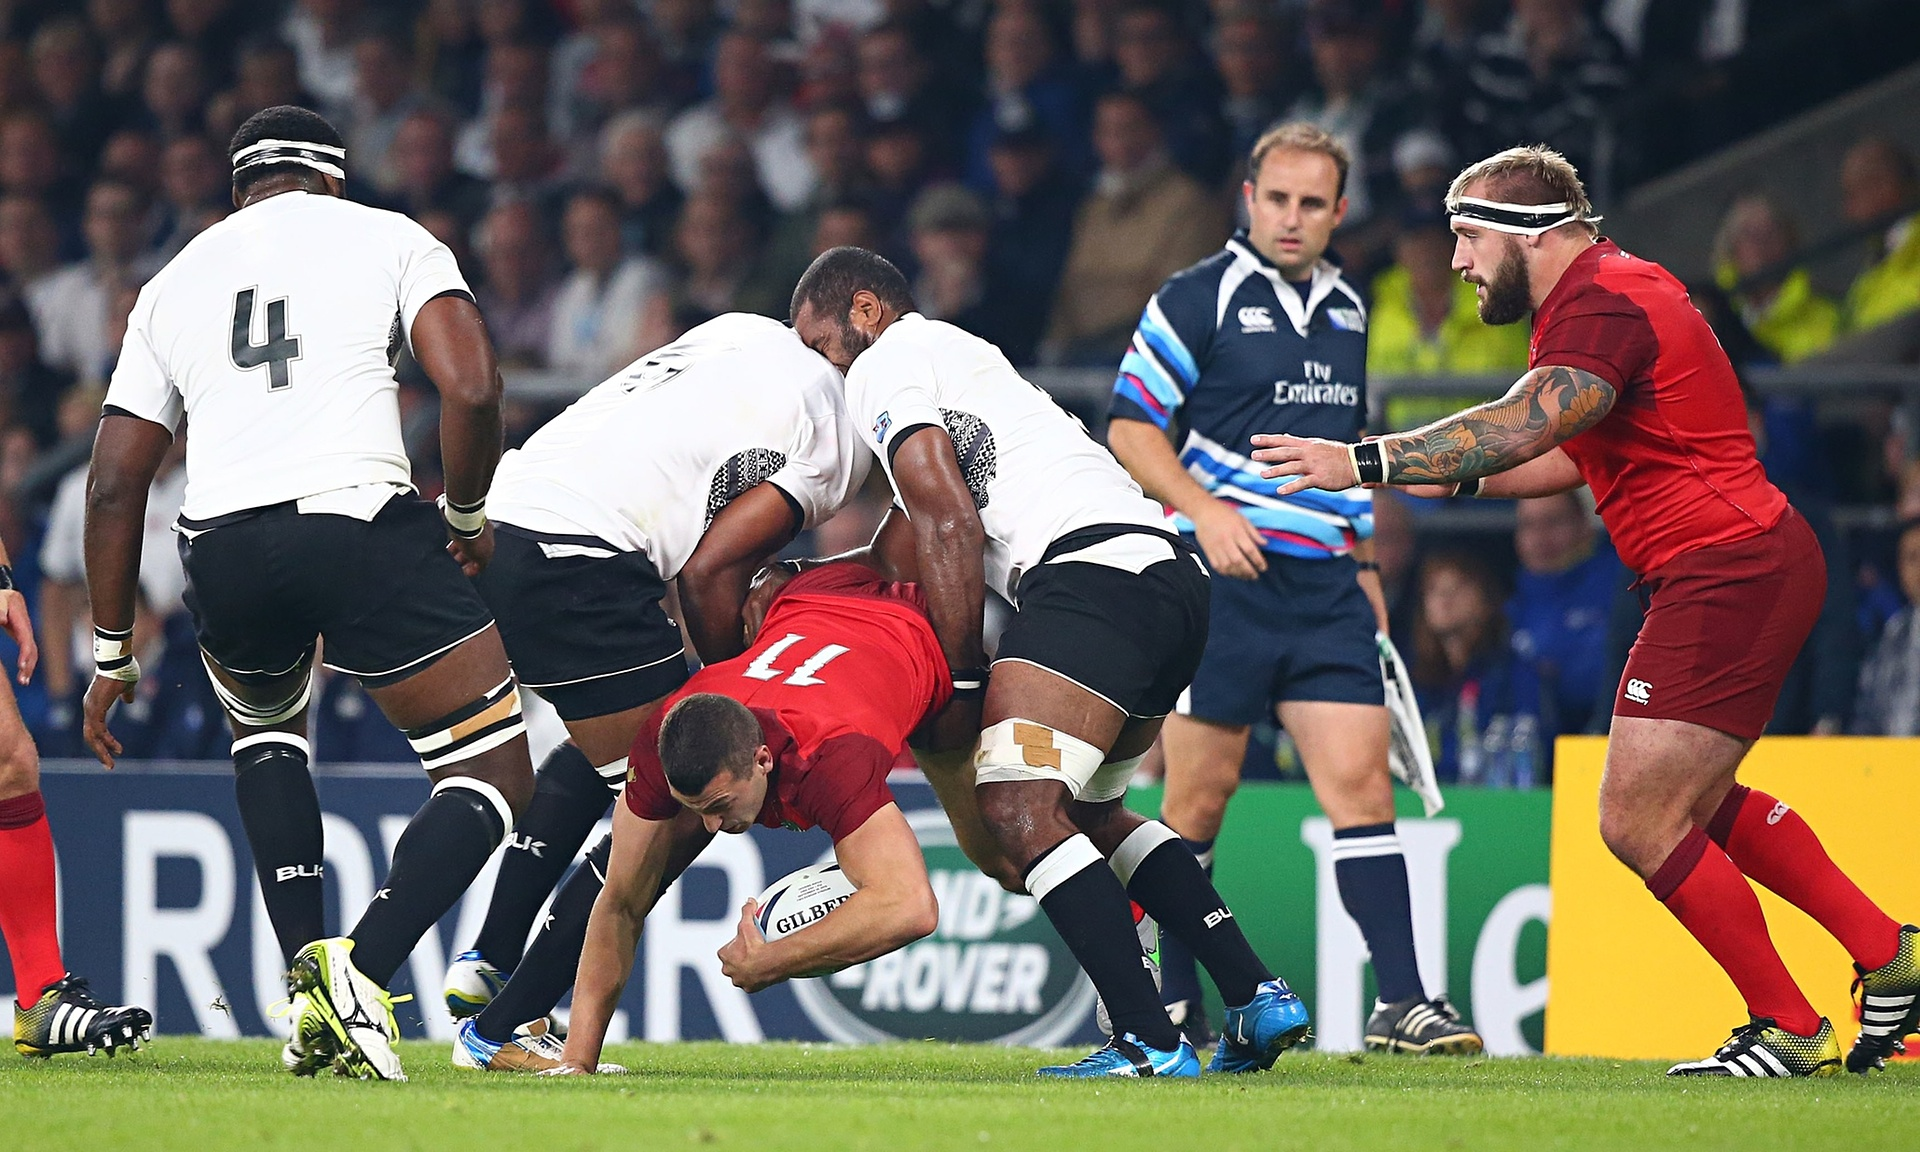 Dominiko Waqaniburotu (2nd left) tip tackles Jonny May in the opening match of the Rugby World Cup. Photo: Matthew Impey/Rex Shutterstock